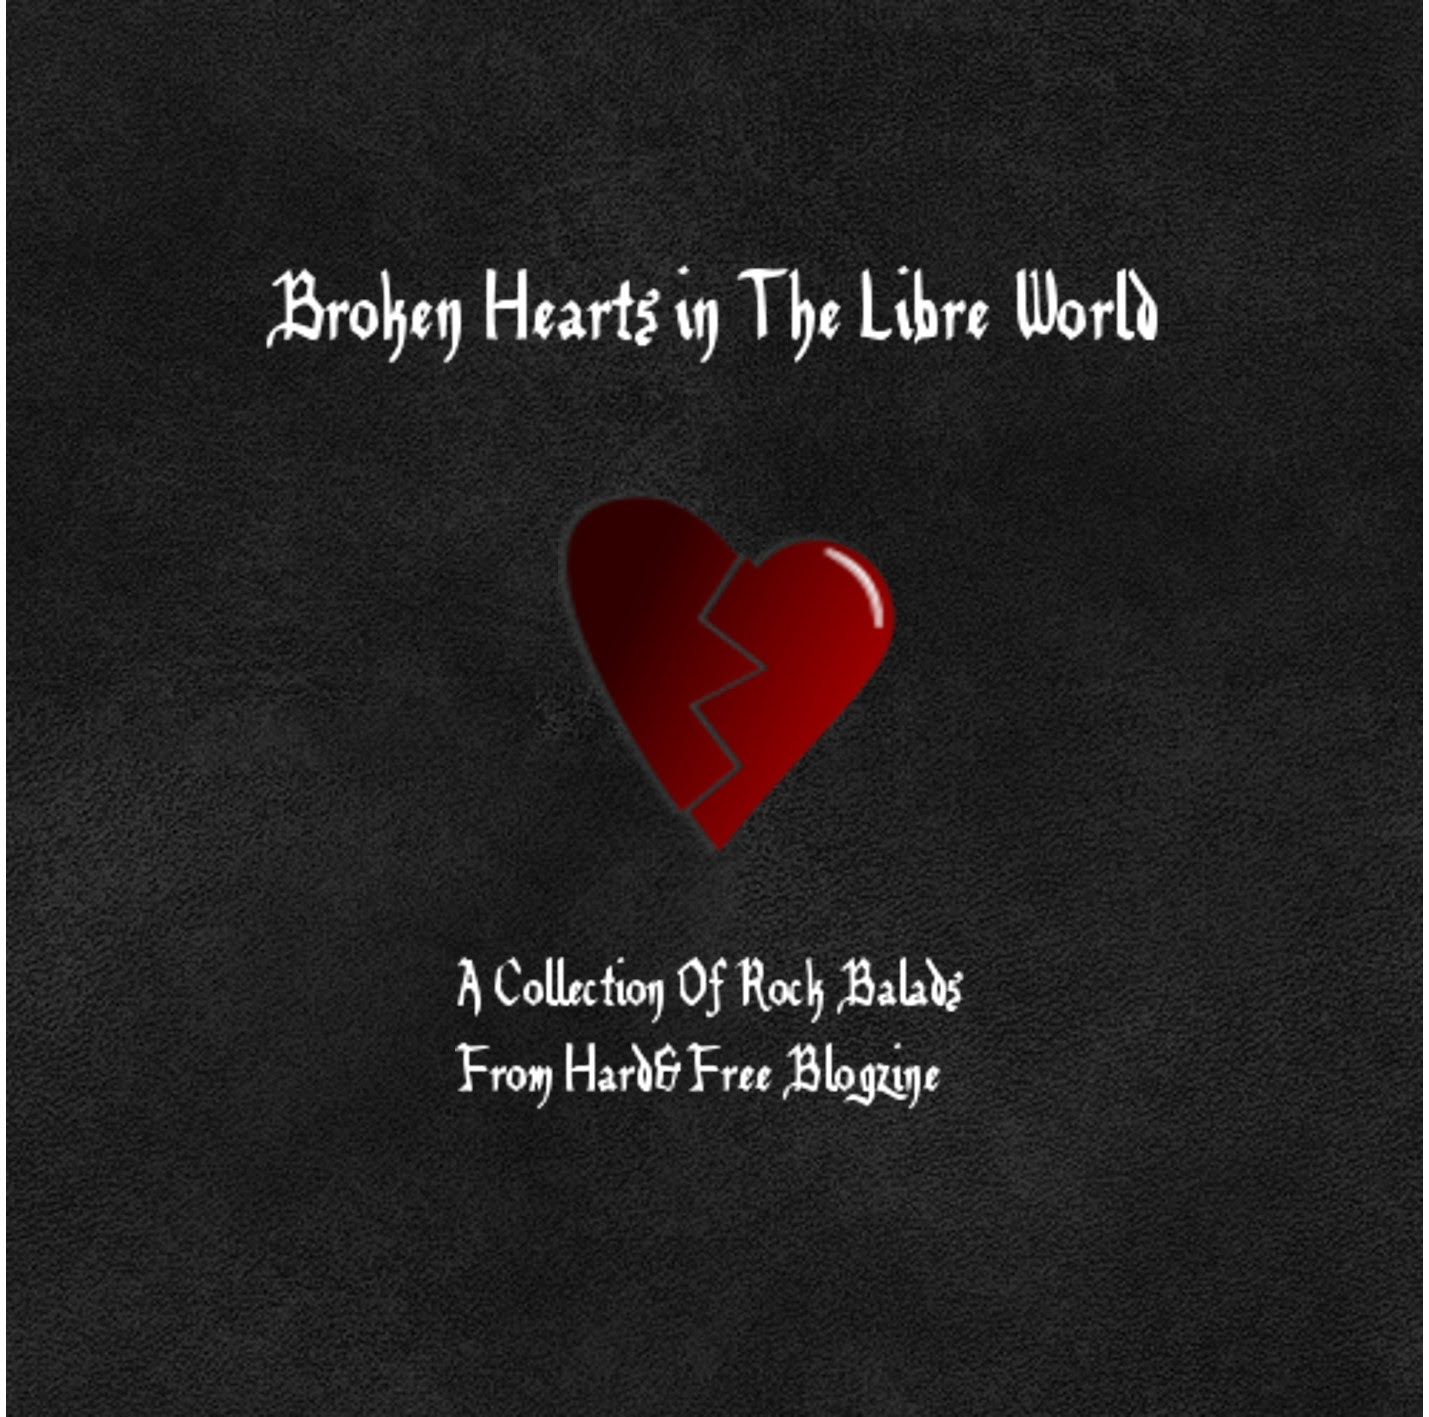 http://hardrockfree.blogspot.com.es/2014/02/broken-hearts-in-libre-world-llega.html